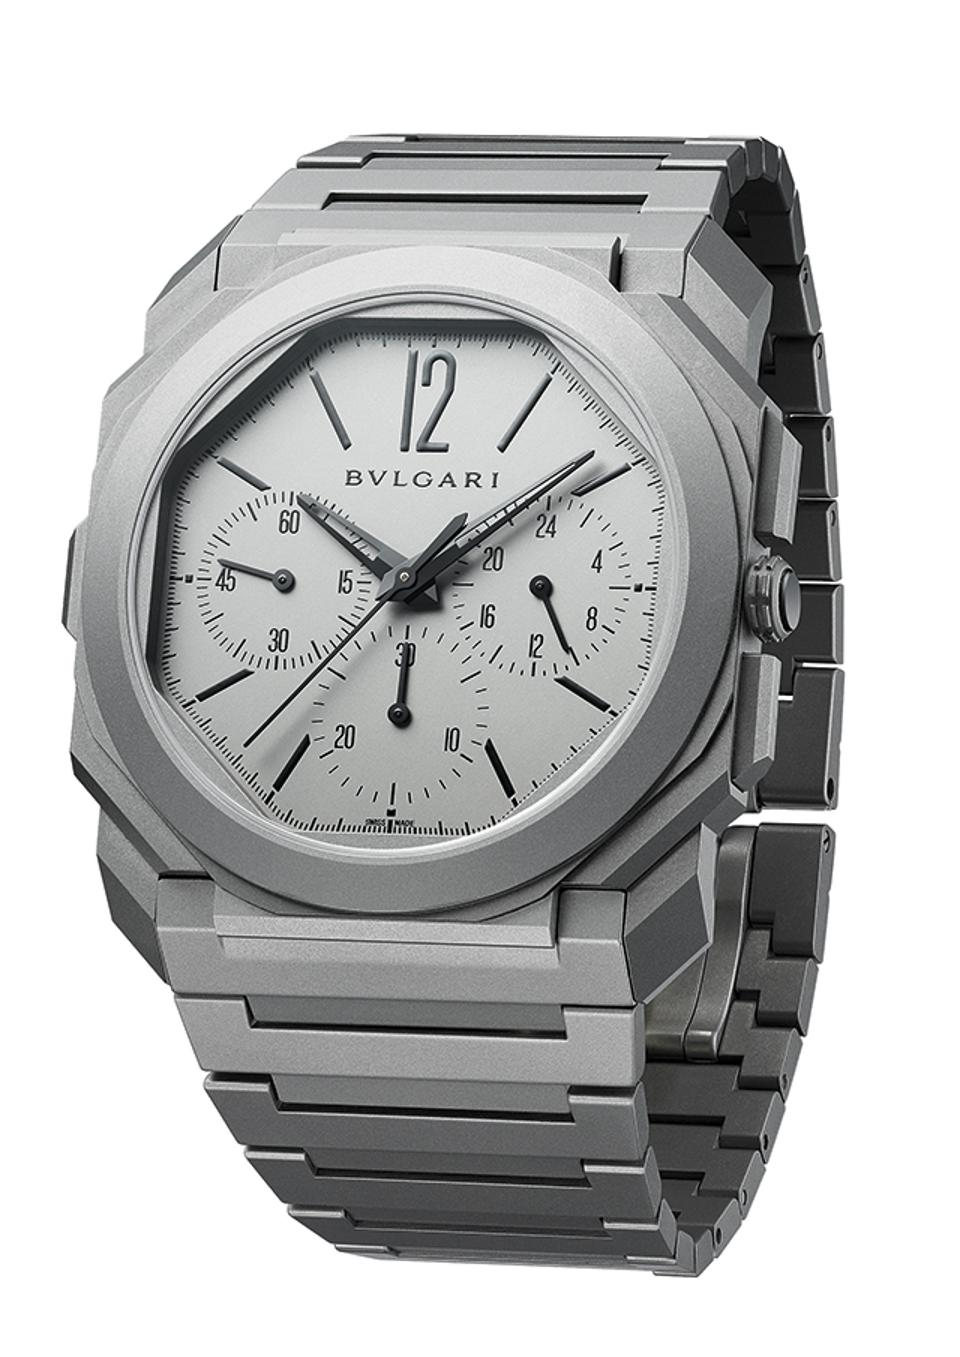 Bulgari took the prize for best Chronograph with its Octo Finissimo Chrono GMT, the world's thinnest chronograph.